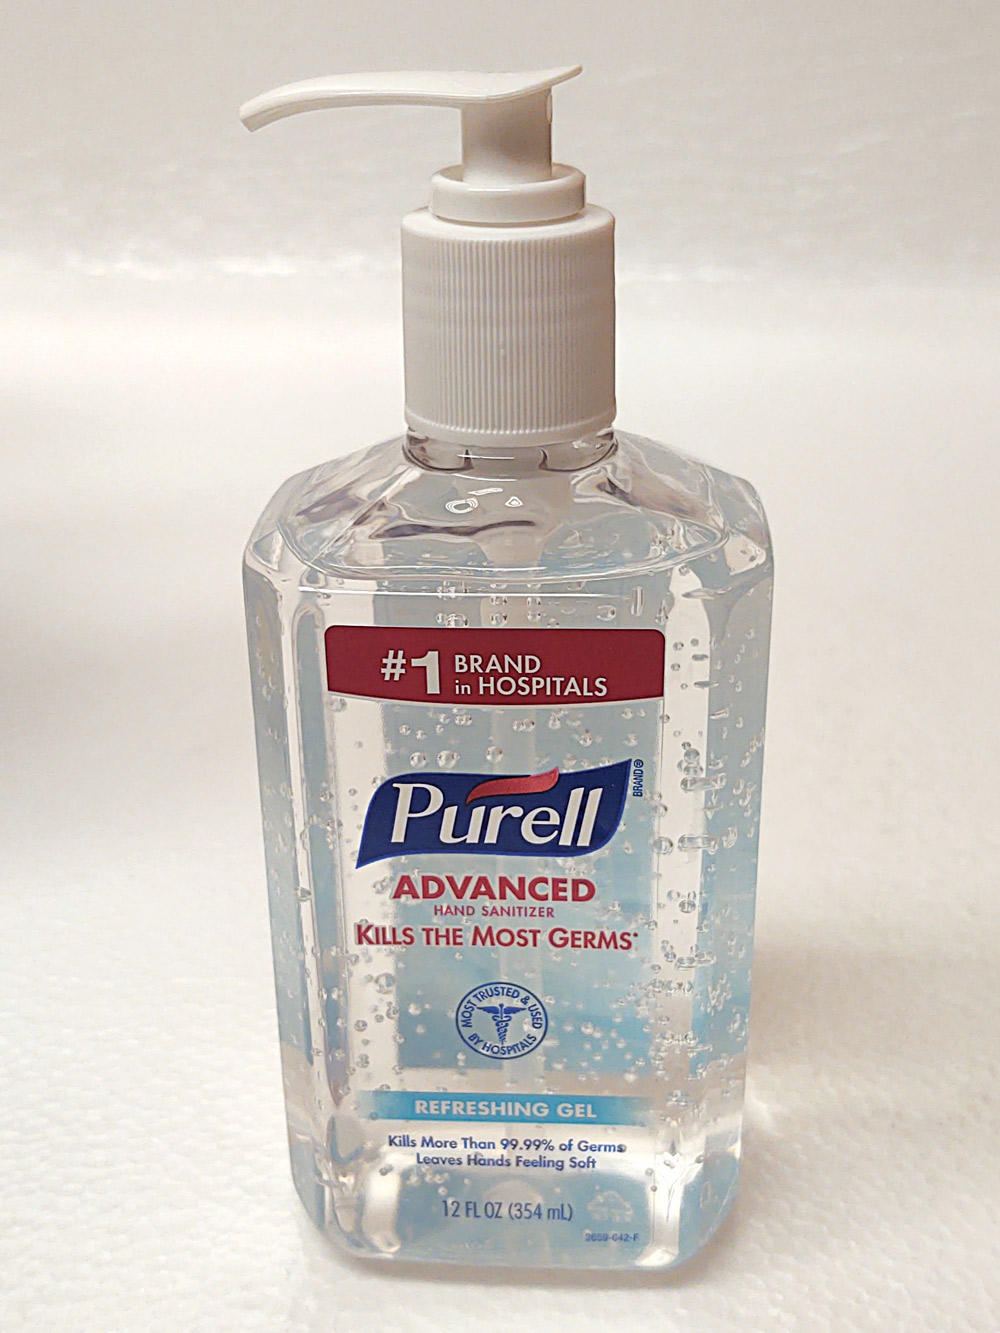 One of the most valuable items during the pandemic was, and continues to be, hand sanitizer.